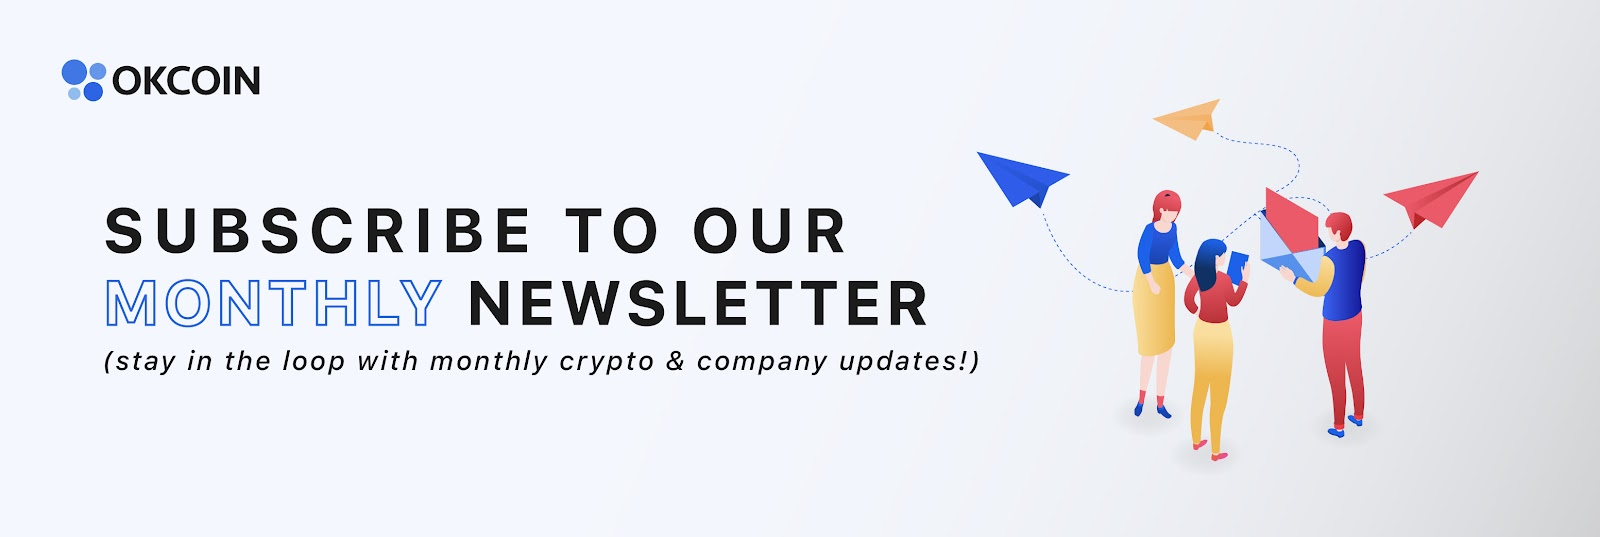 How the WHO and UN Foundation Support Us During the Coronavirus: Sign up for OKCoin's Newsletter